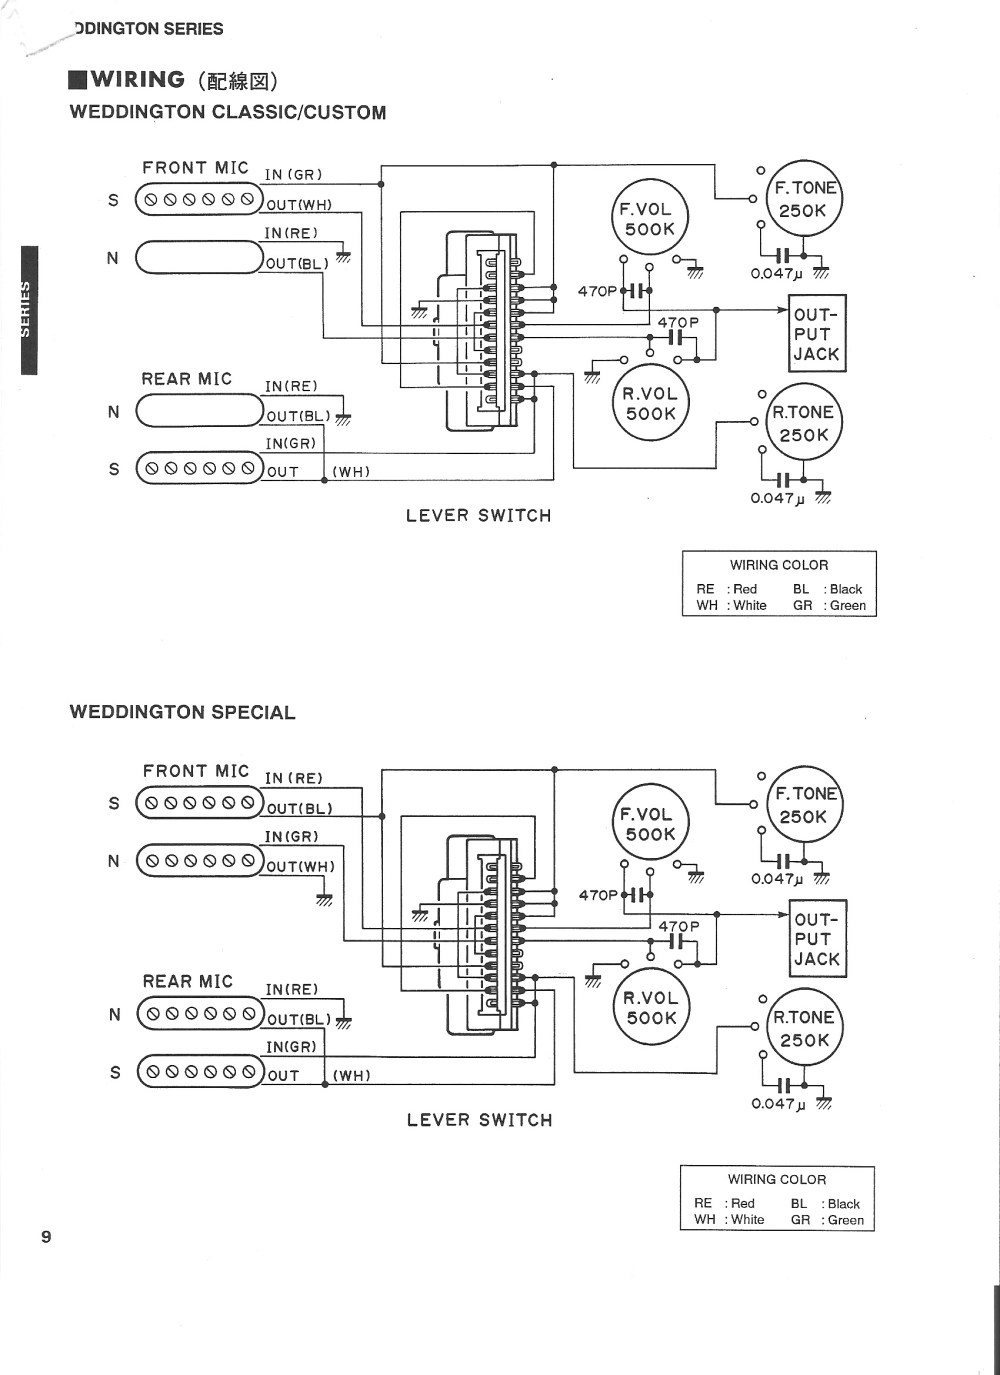 medium resolution of ibanez rs240 wiring diagram yamaha weddington classic custom wiring diagram